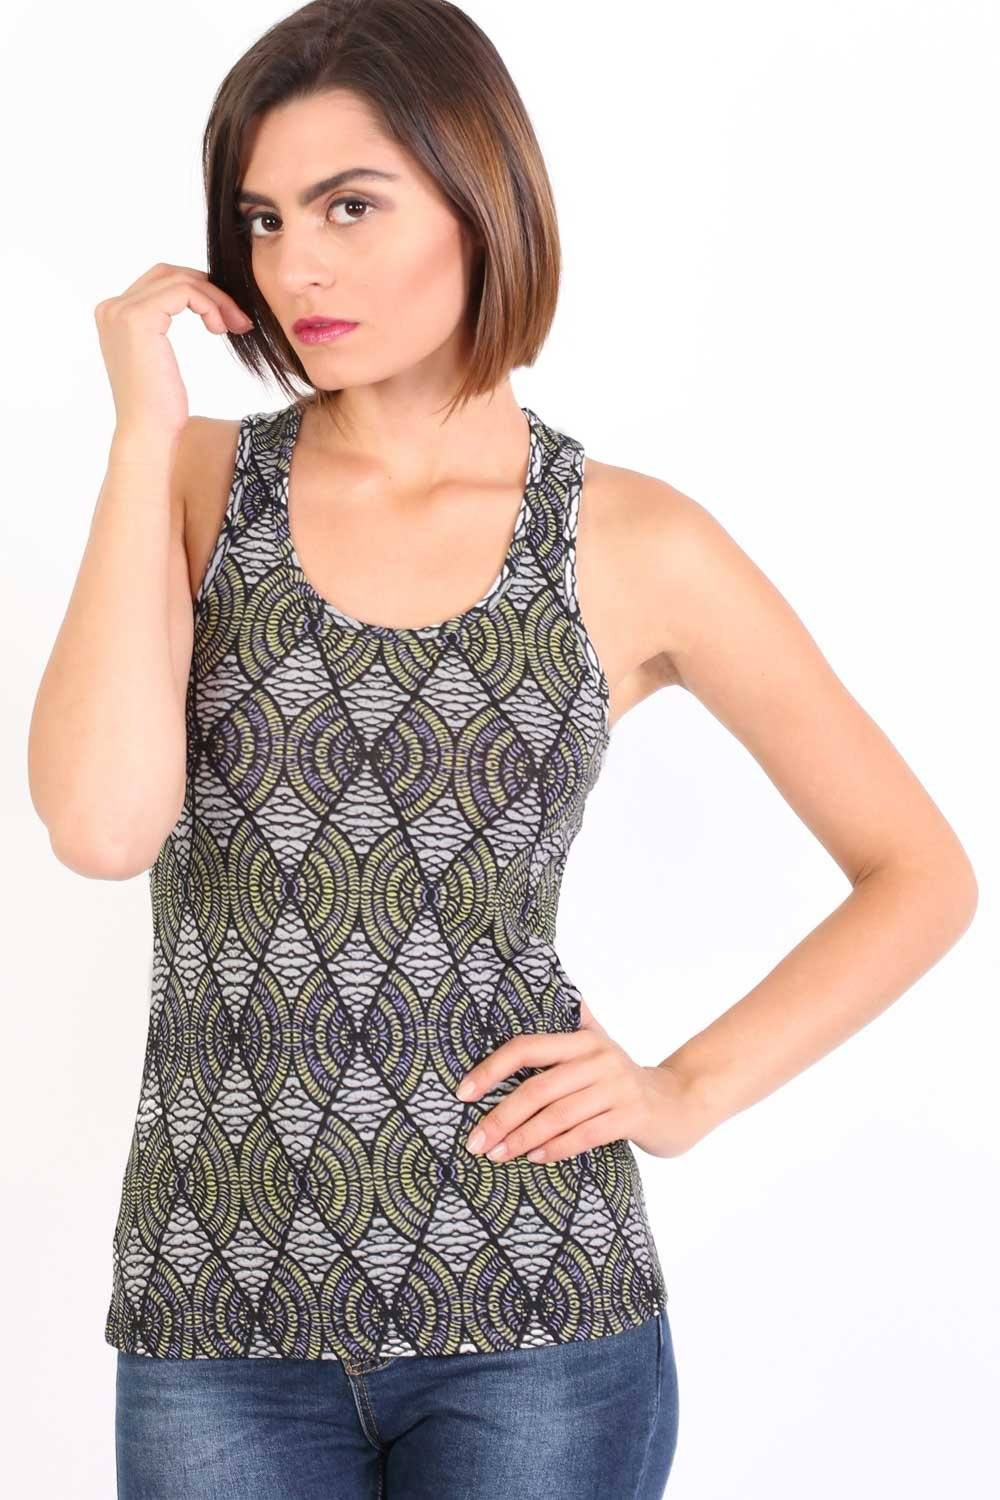 All Over Print Sleeveless Vest Top in Shiny Black 1